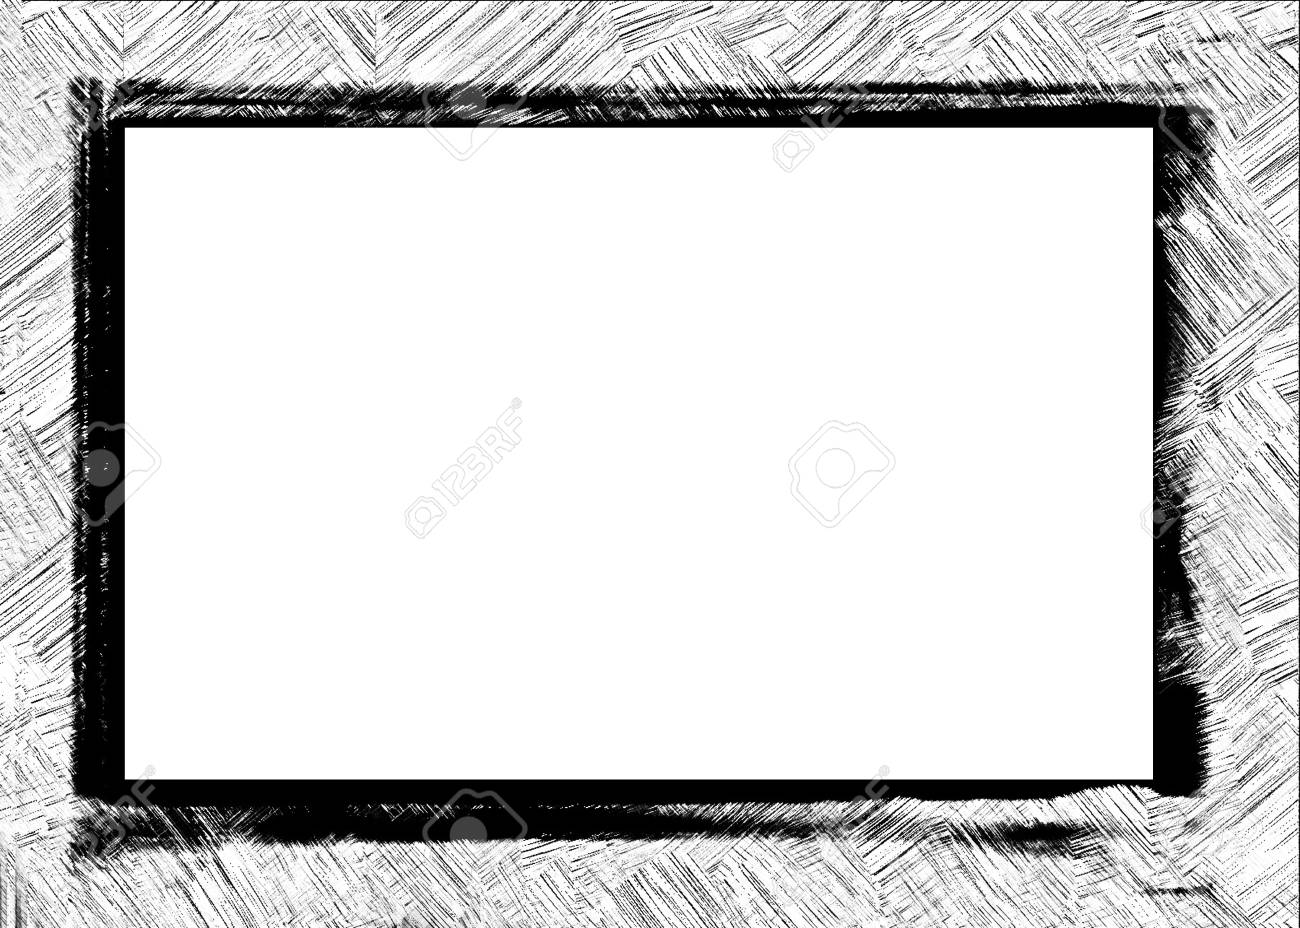 Computer designed grunge border or frame Stock Photo - 17618511